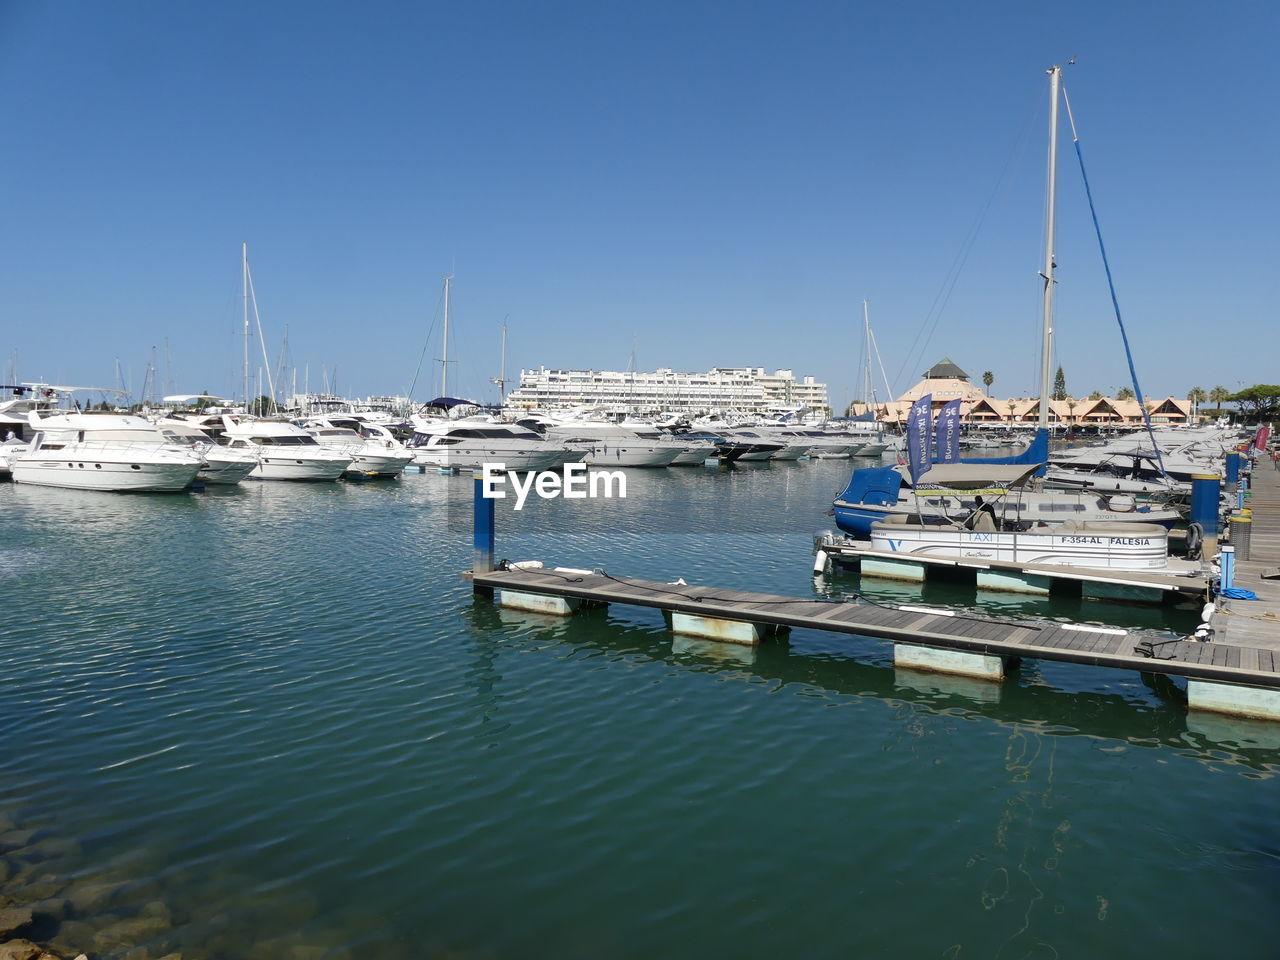 nautical vessel, water, transportation, mode of transportation, moored, sky, sailboat, sea, pole, clear sky, nature, mast, day, harbor, waterfront, no people, blue, sunlight, reflection, yacht, outdoors, marina, anchored, bay